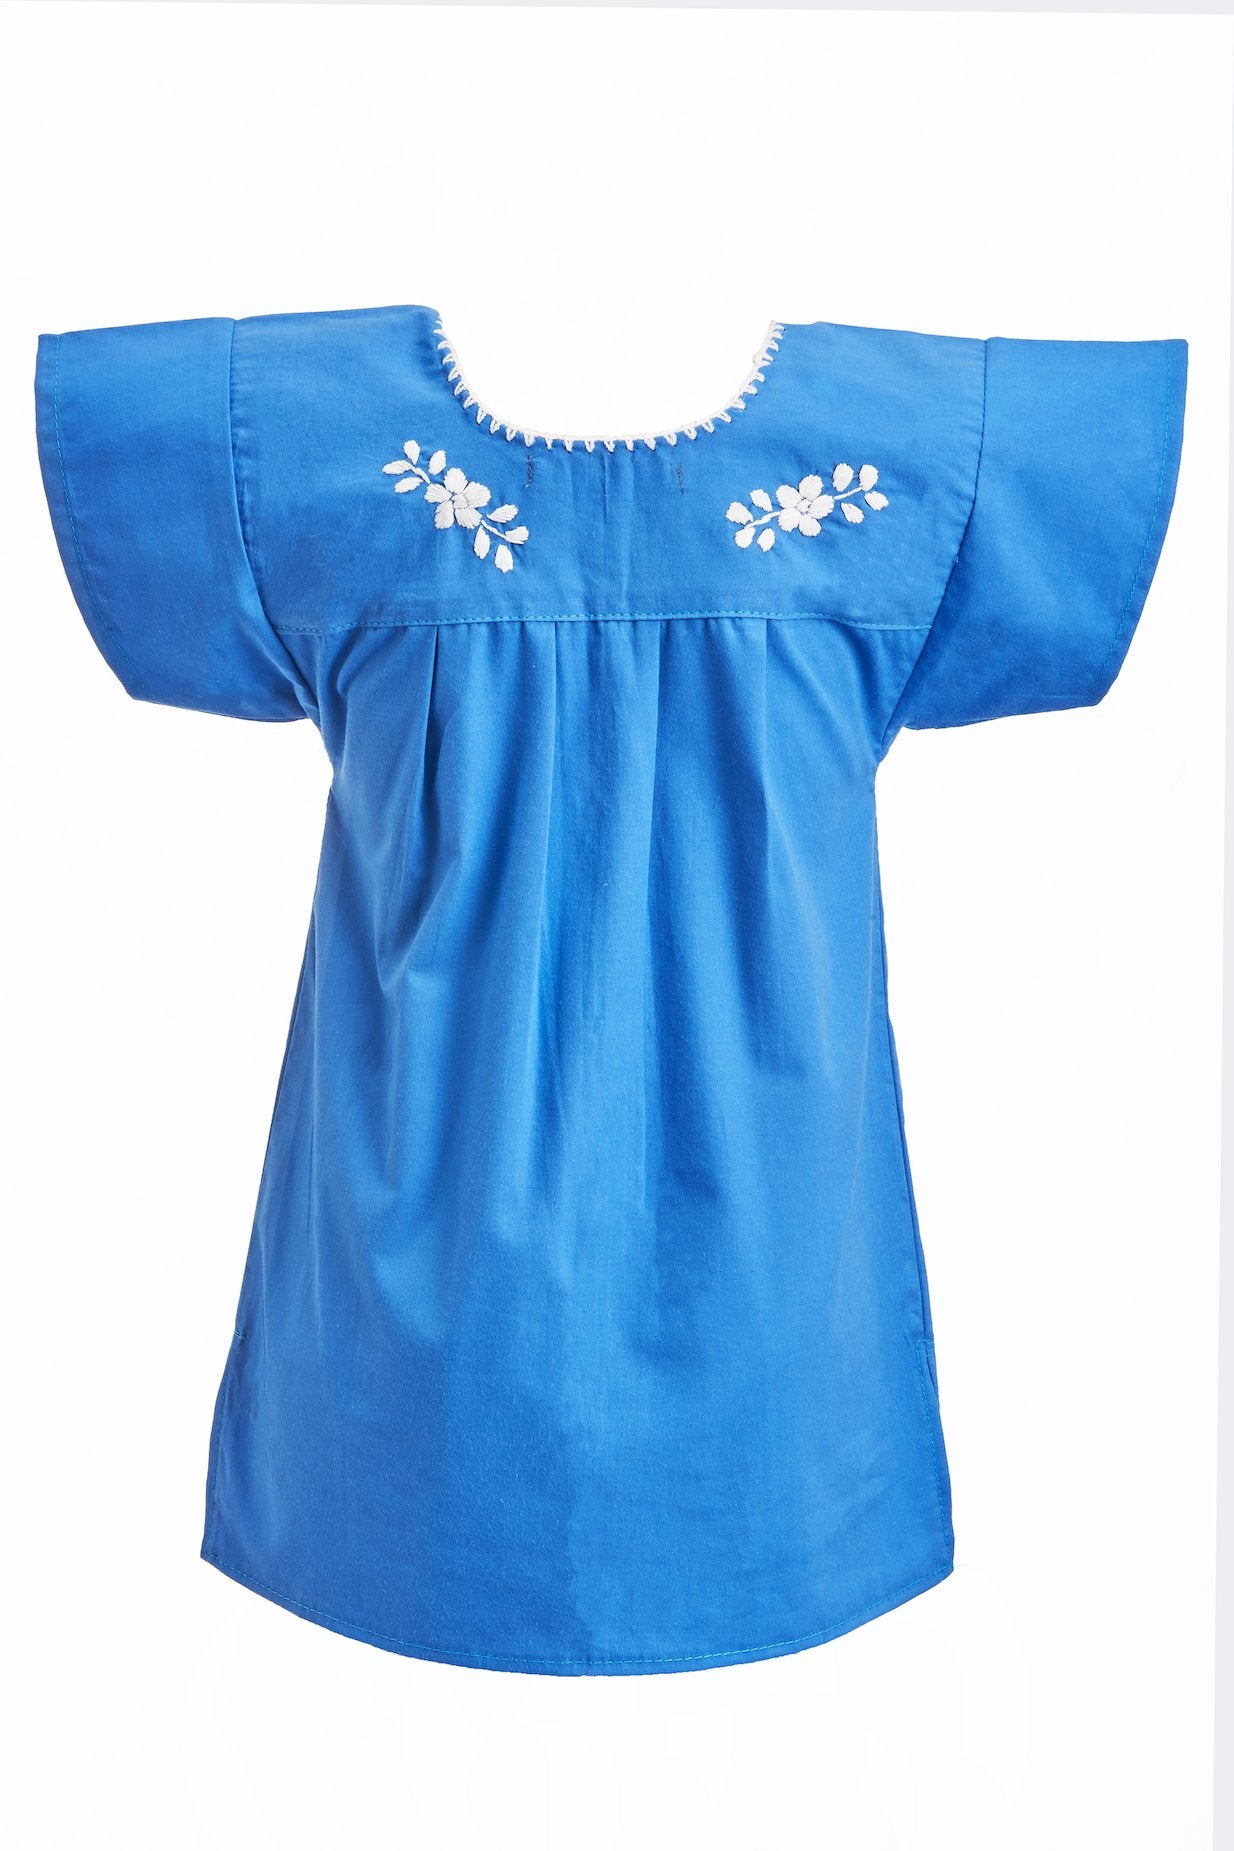 THE GIRLS DRESS - BLUE